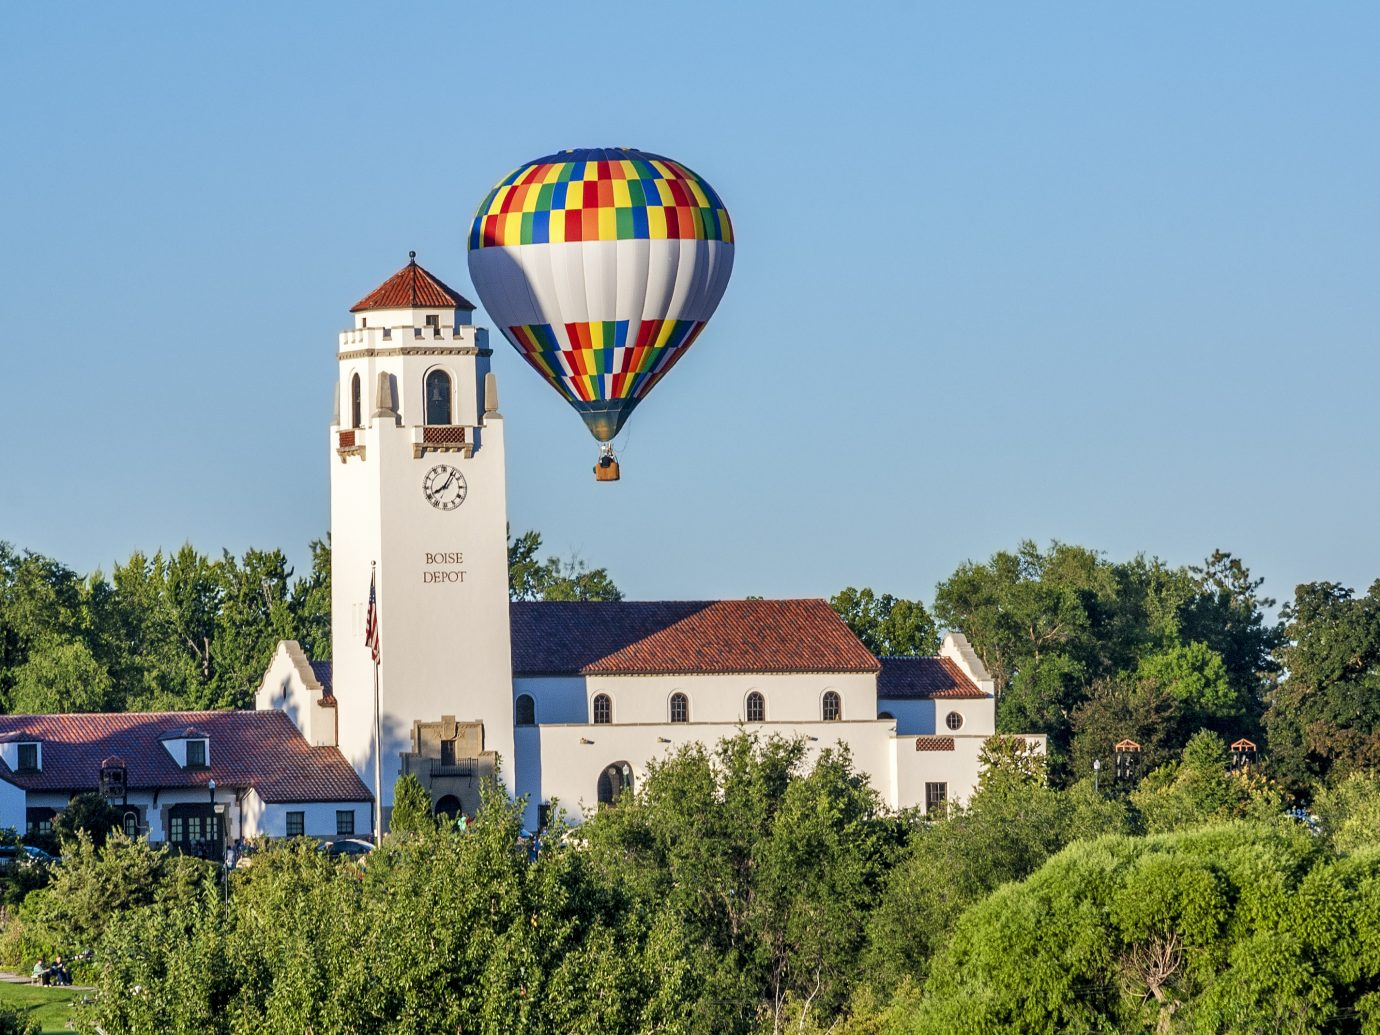 City park at the Boise depot and balloon